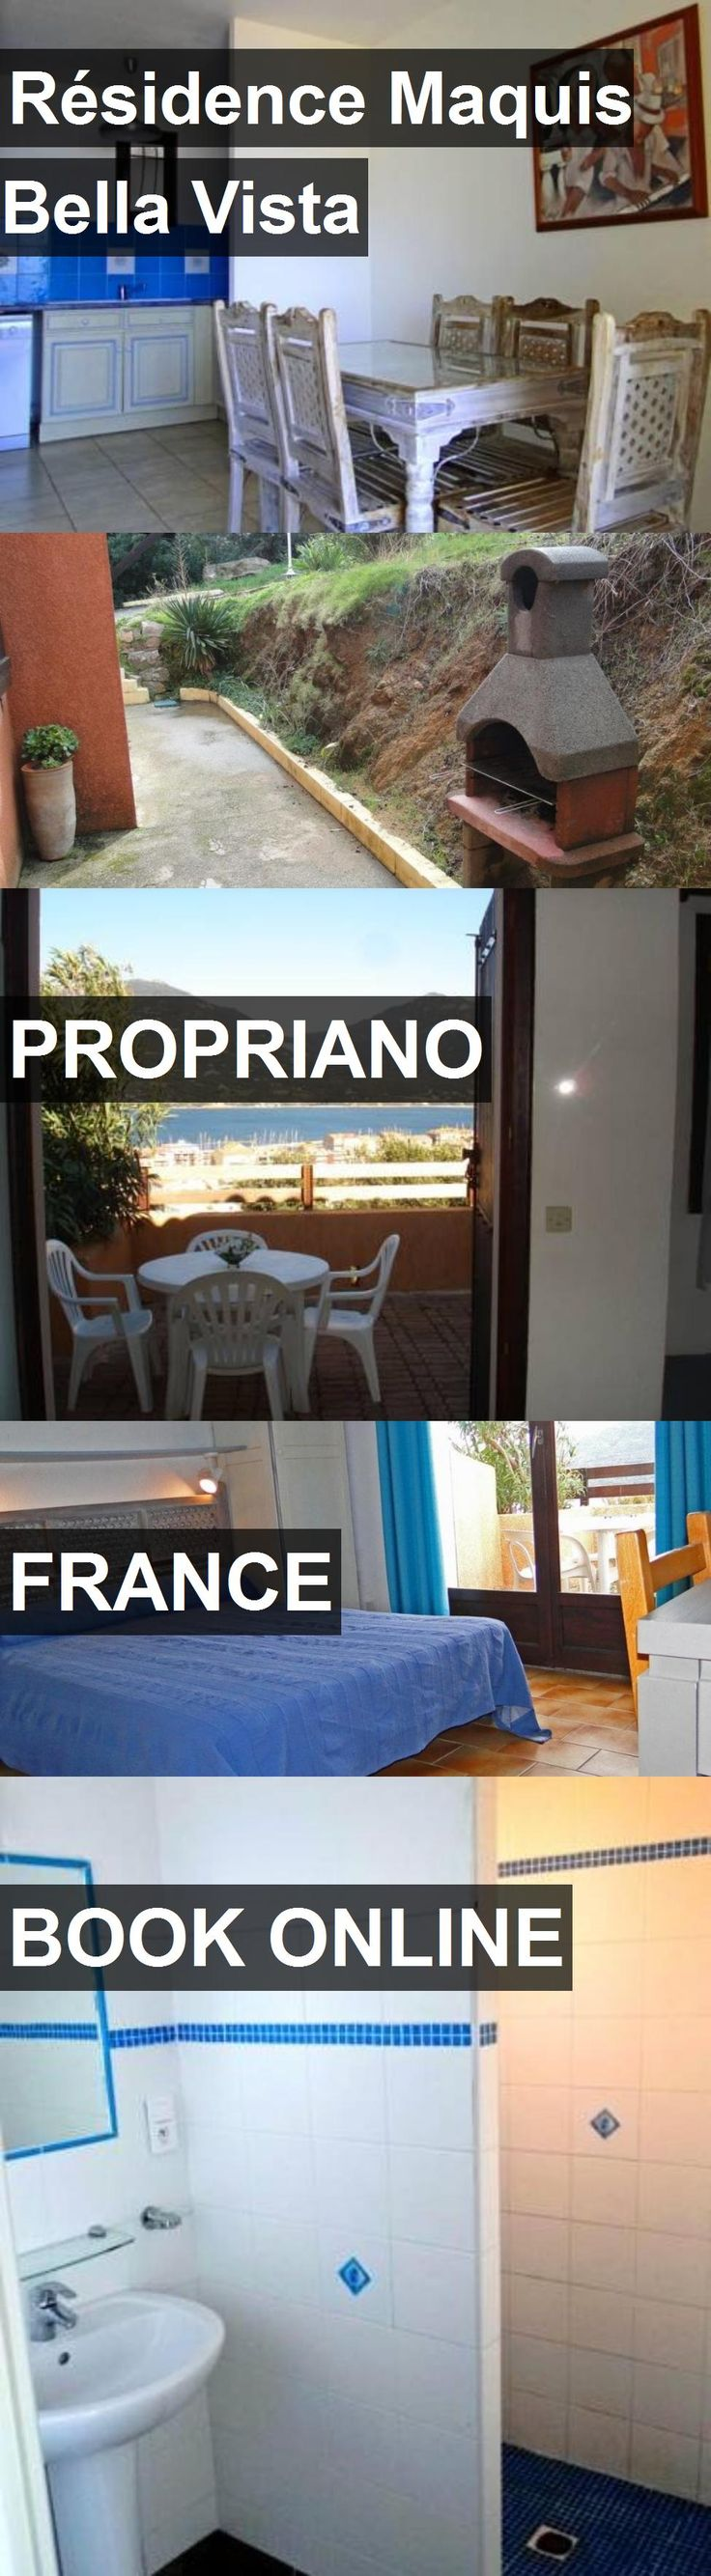 Hotel Résidence Maquis Bella Vista in Propriano, France. For more information, photos, reviews and best prices please follow the link. #France #Propriano #hotel #travel #vacation